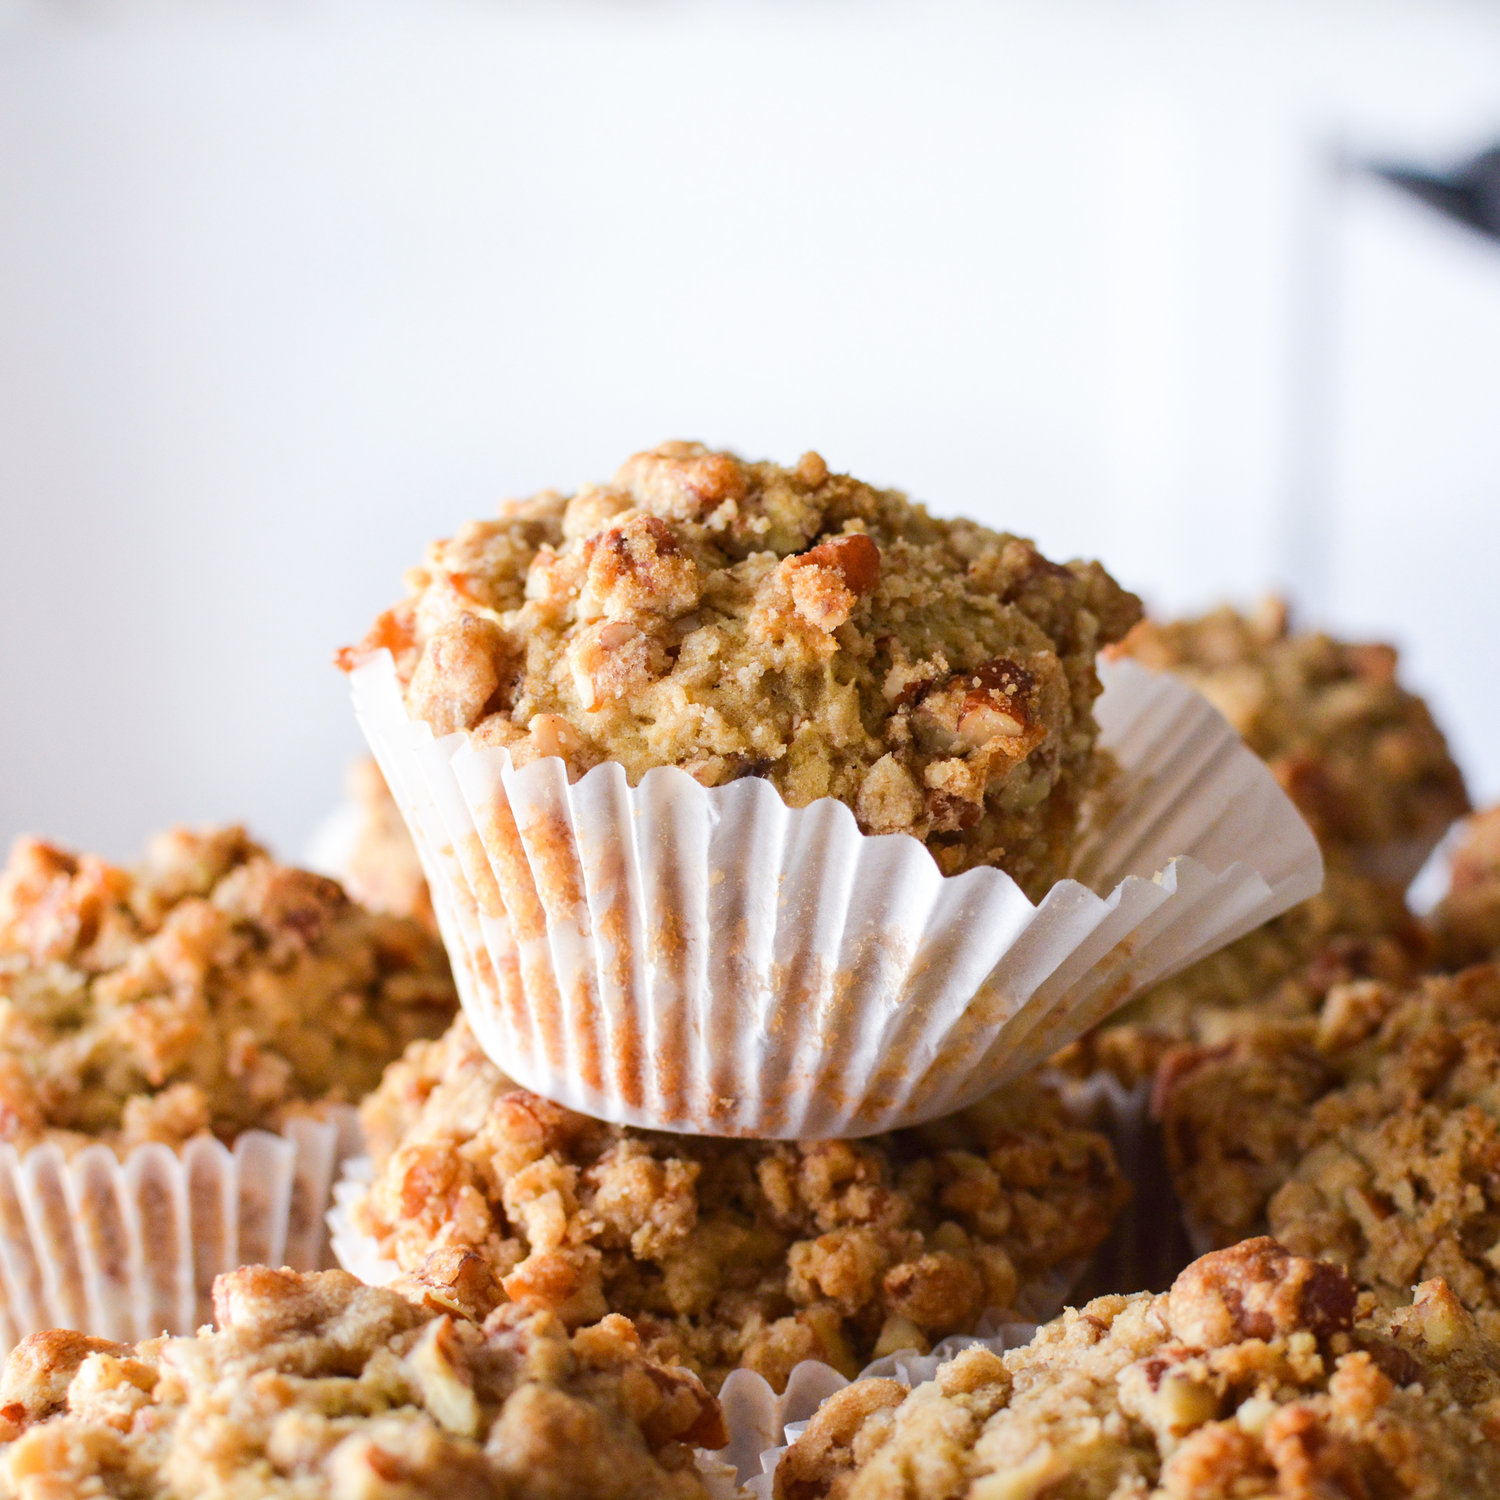 Caramelized Banana Muffins